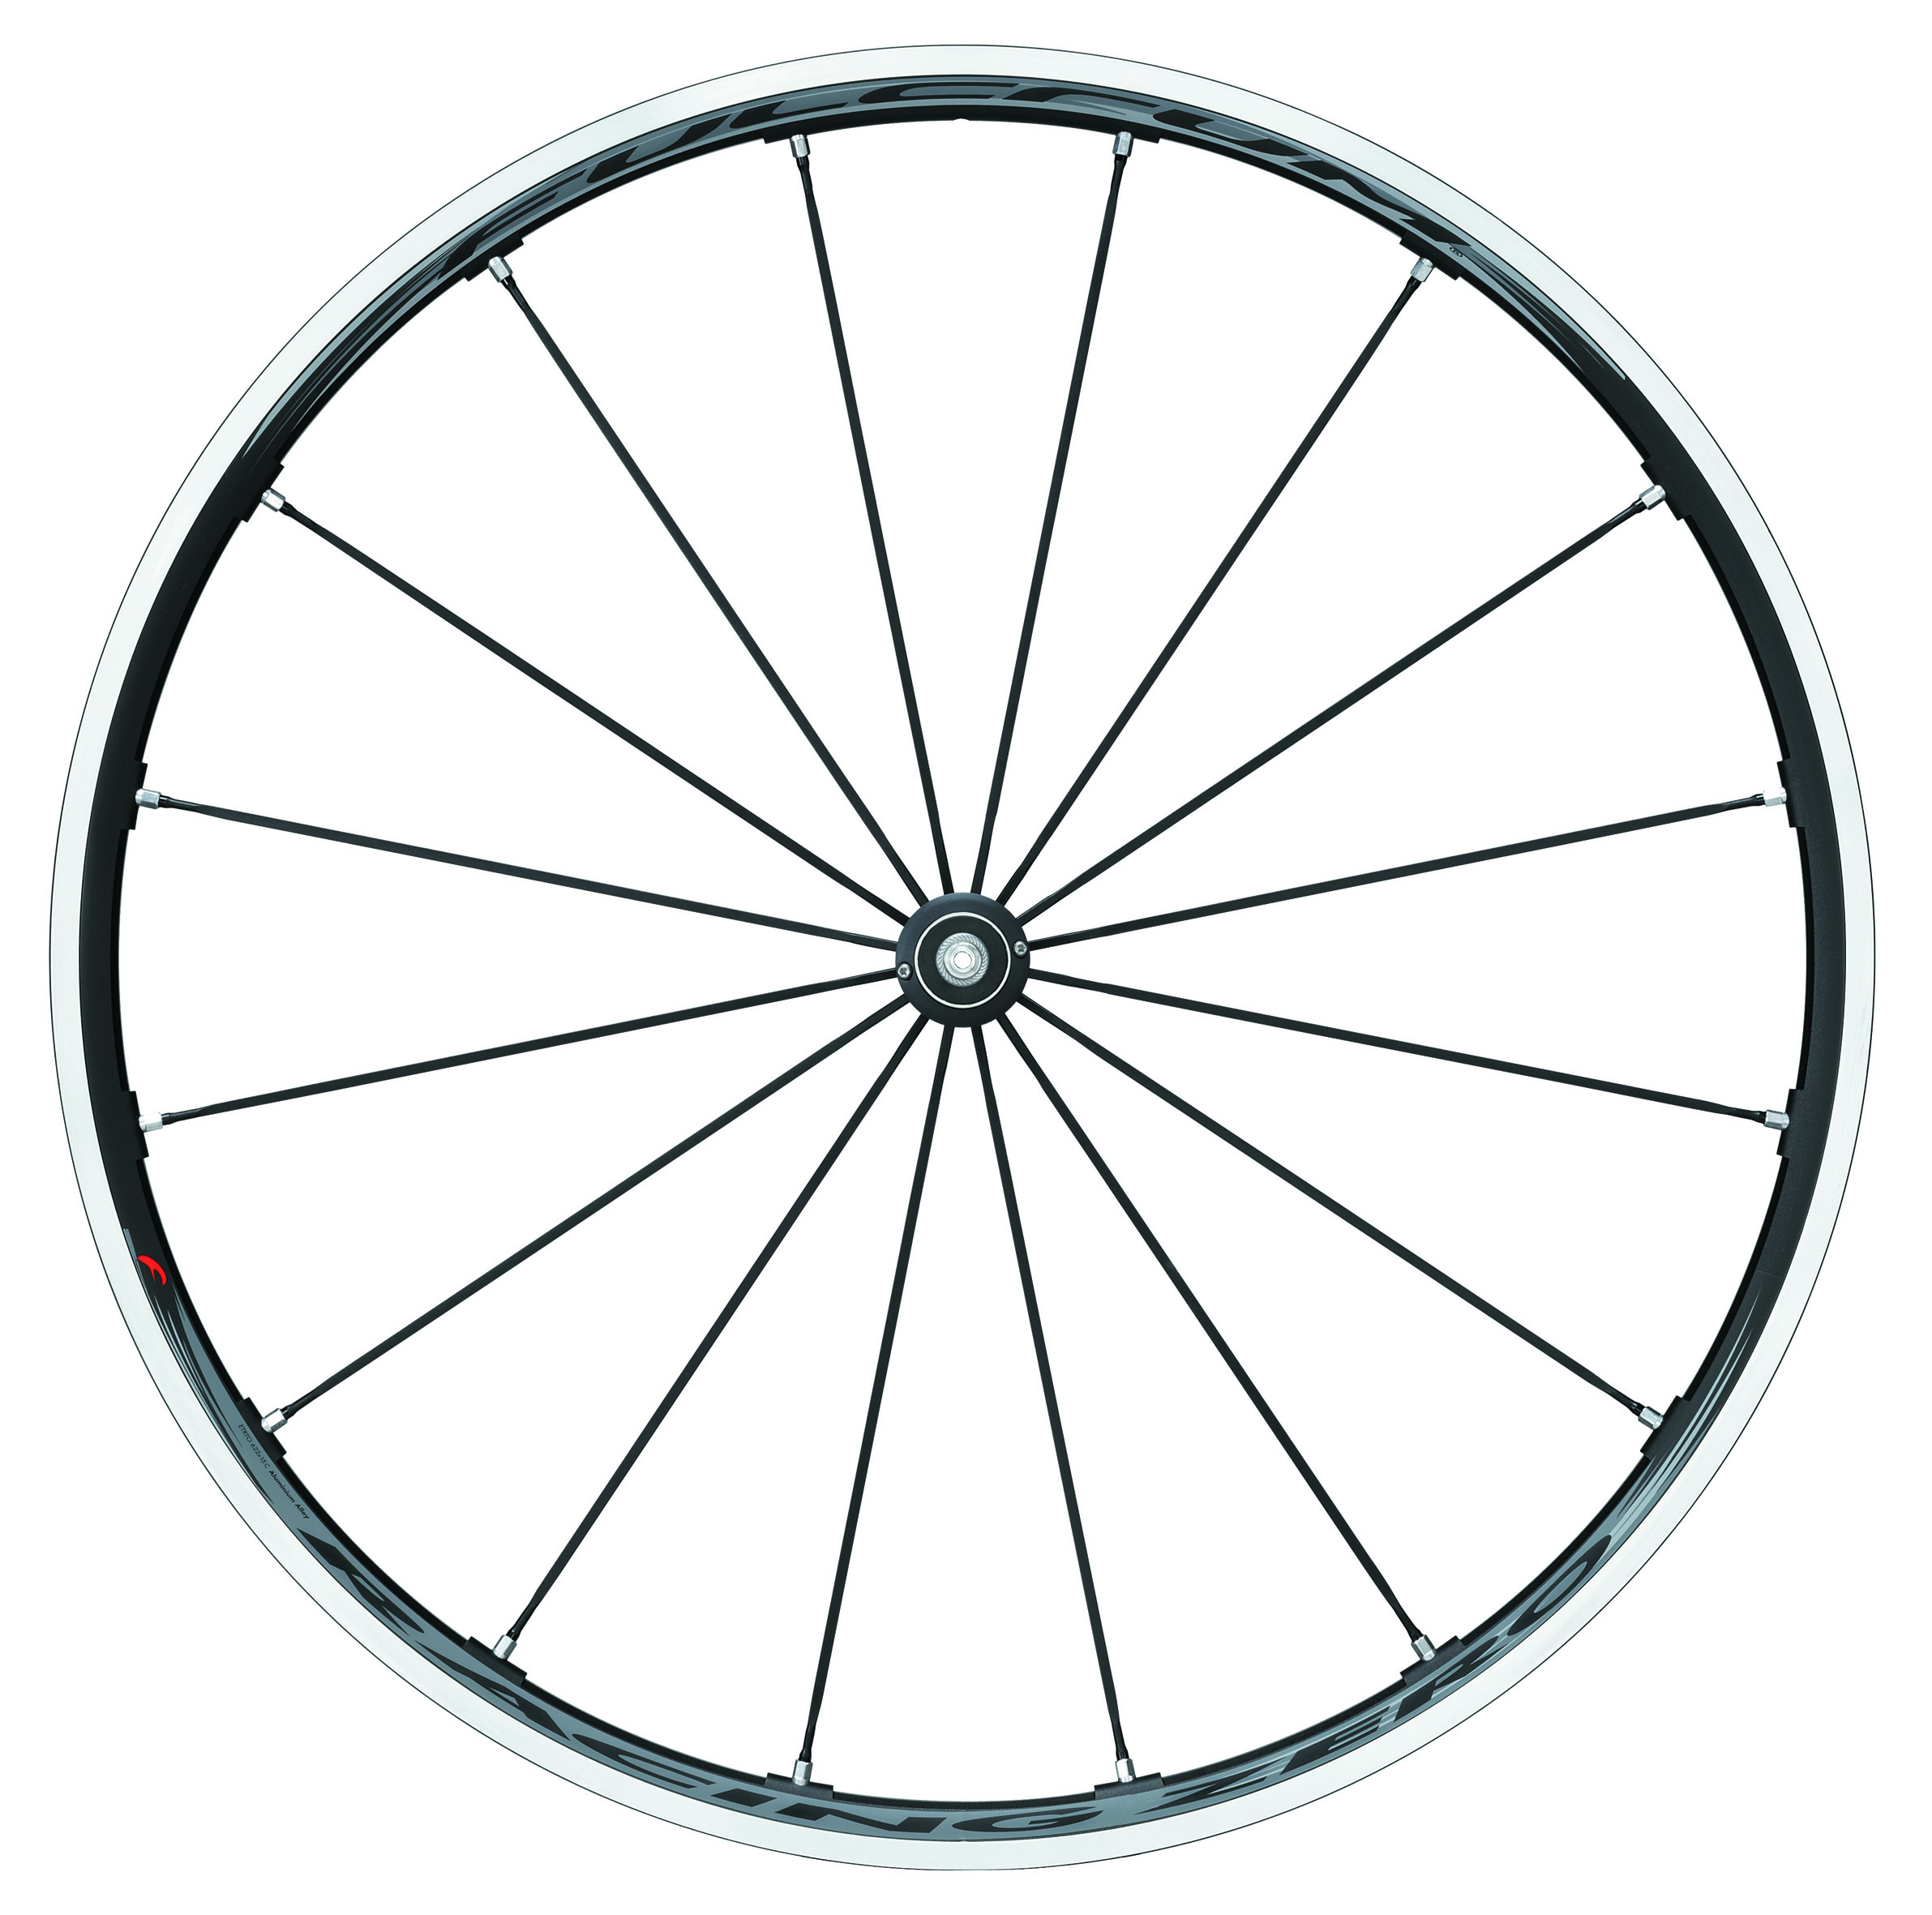 Bicycle Wheels Drawingbdpd9.